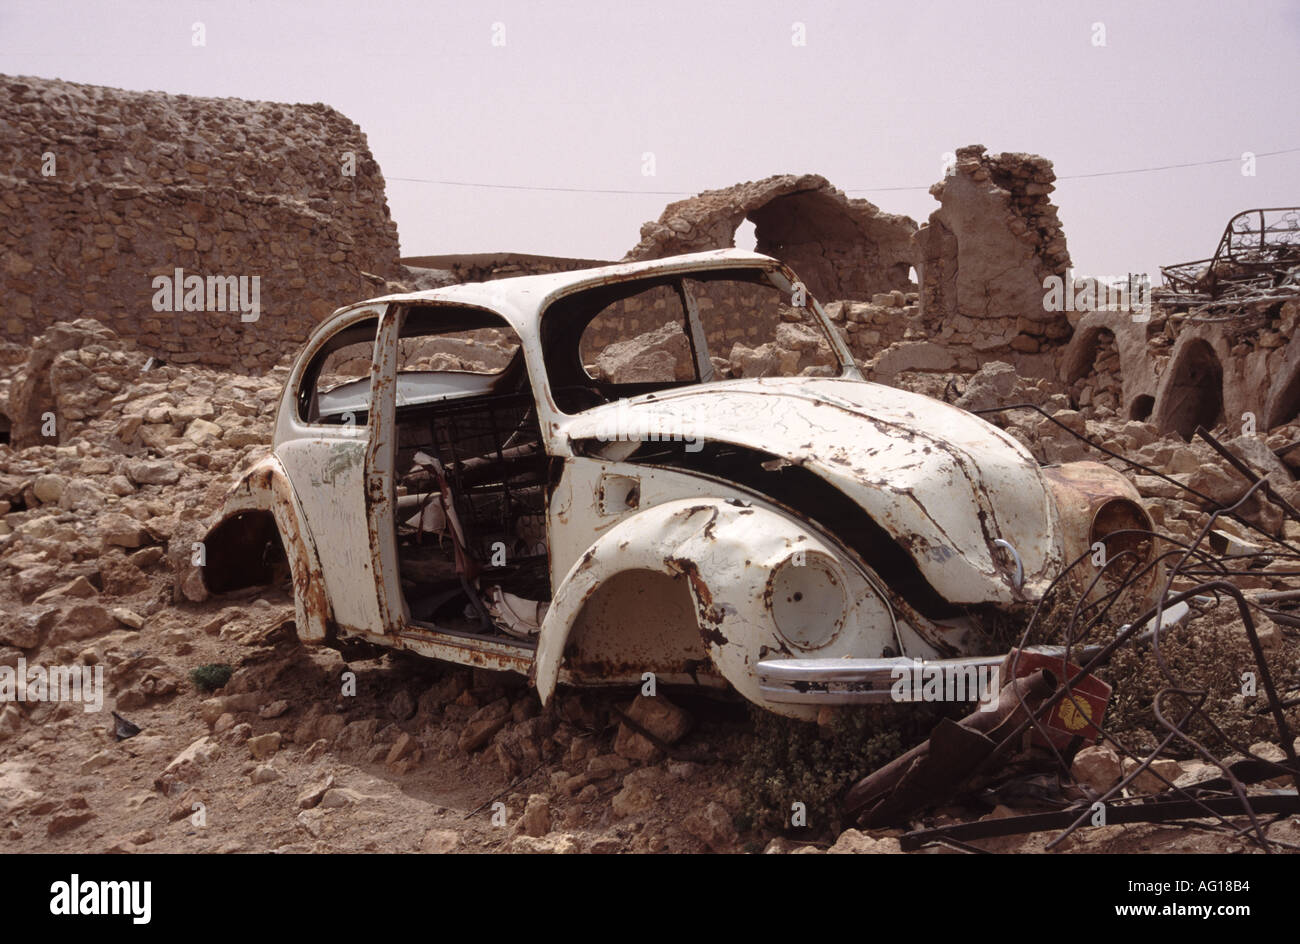 car wreck of an old vw beetle seen in Libya - Stock Image